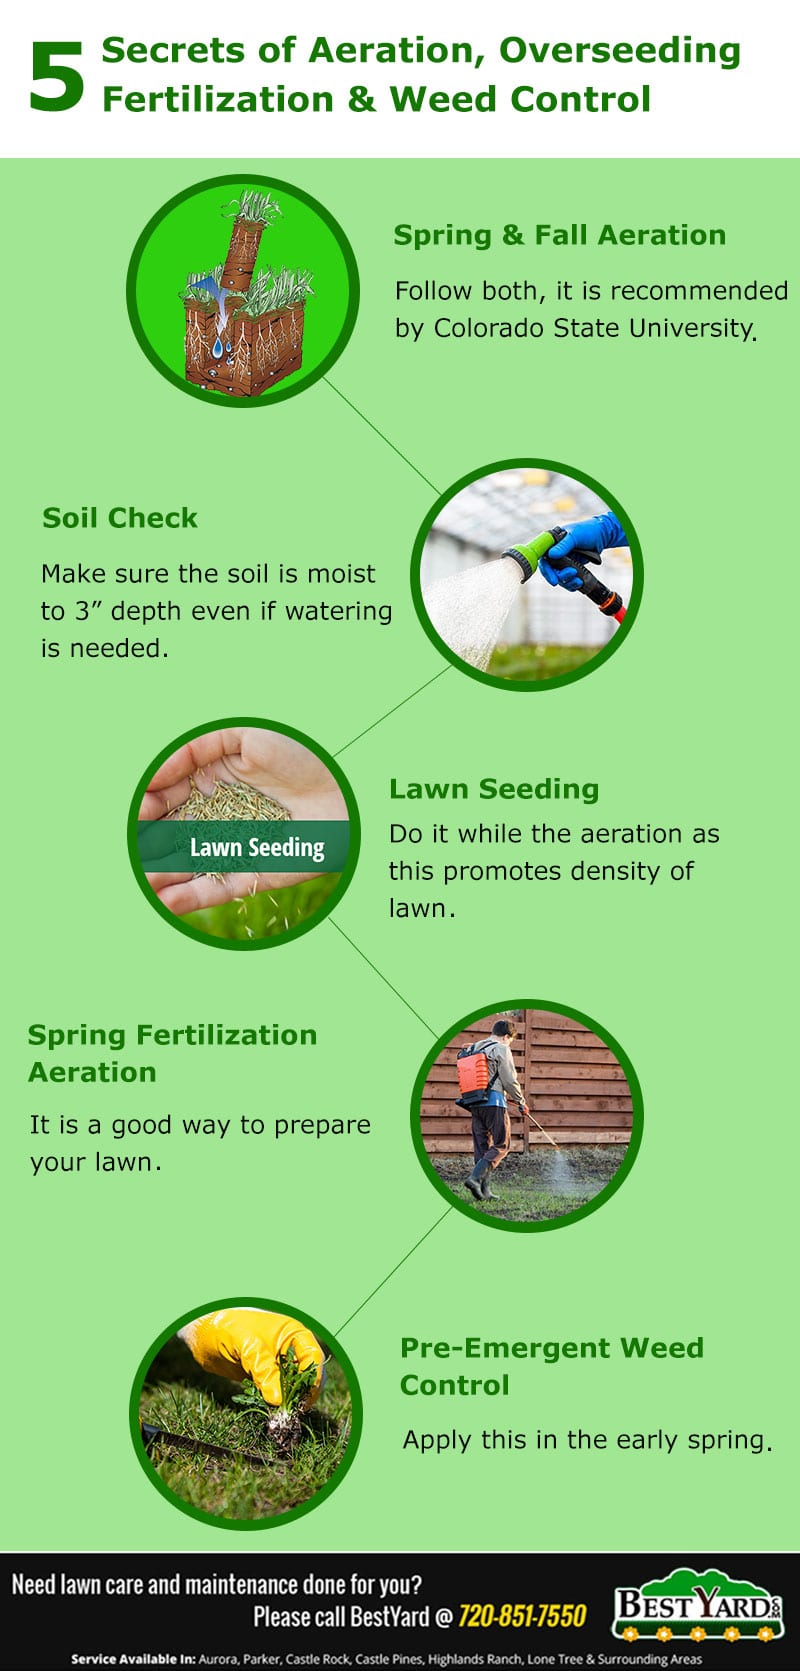 5 Secrets of Aeration, Overseeding, Fertilization & Weed Control